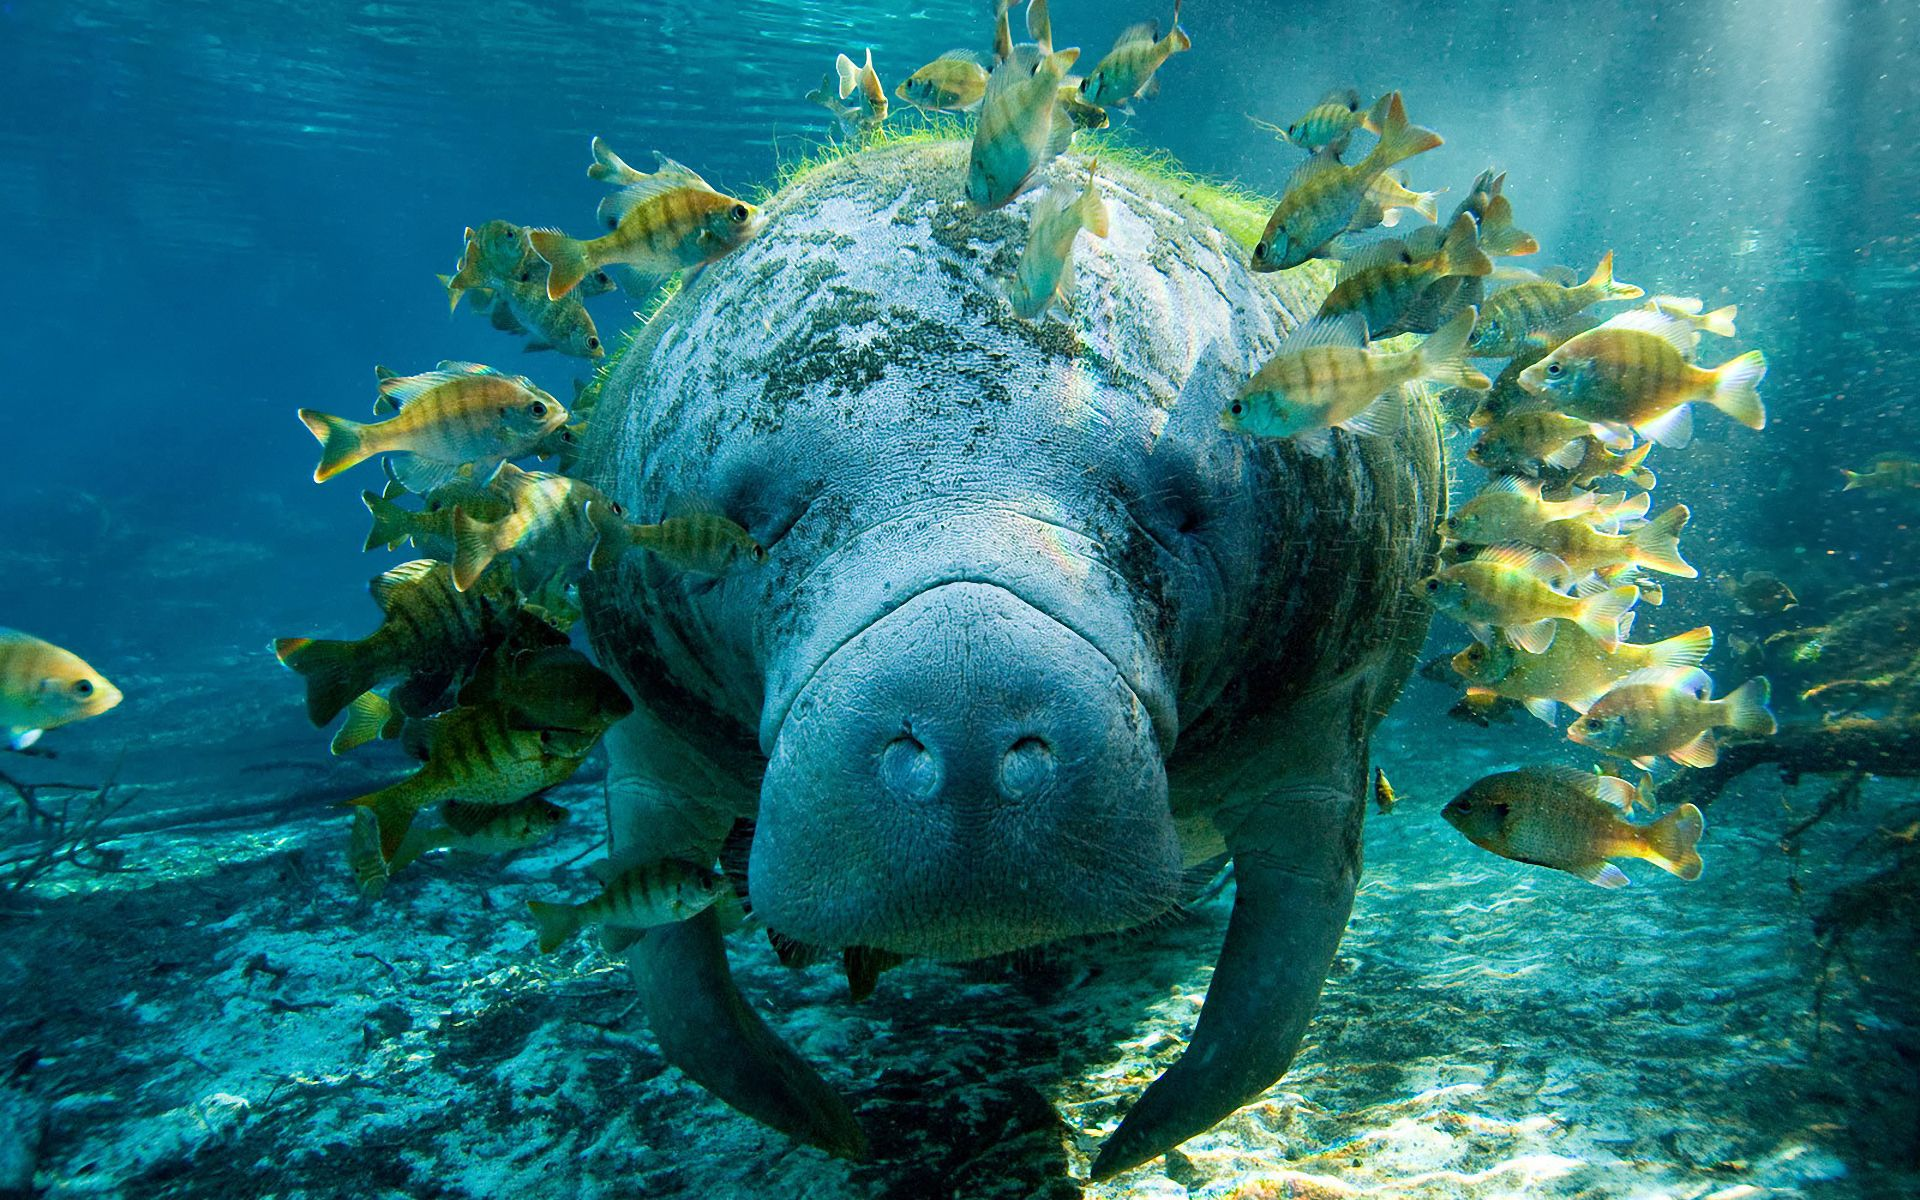 This Manatee Is Swarmed By Fish In The Water Manatees Are Most Commonly Found In Warm Water Climates Such As Florida The Manatee Animal Planet Ocean Animals